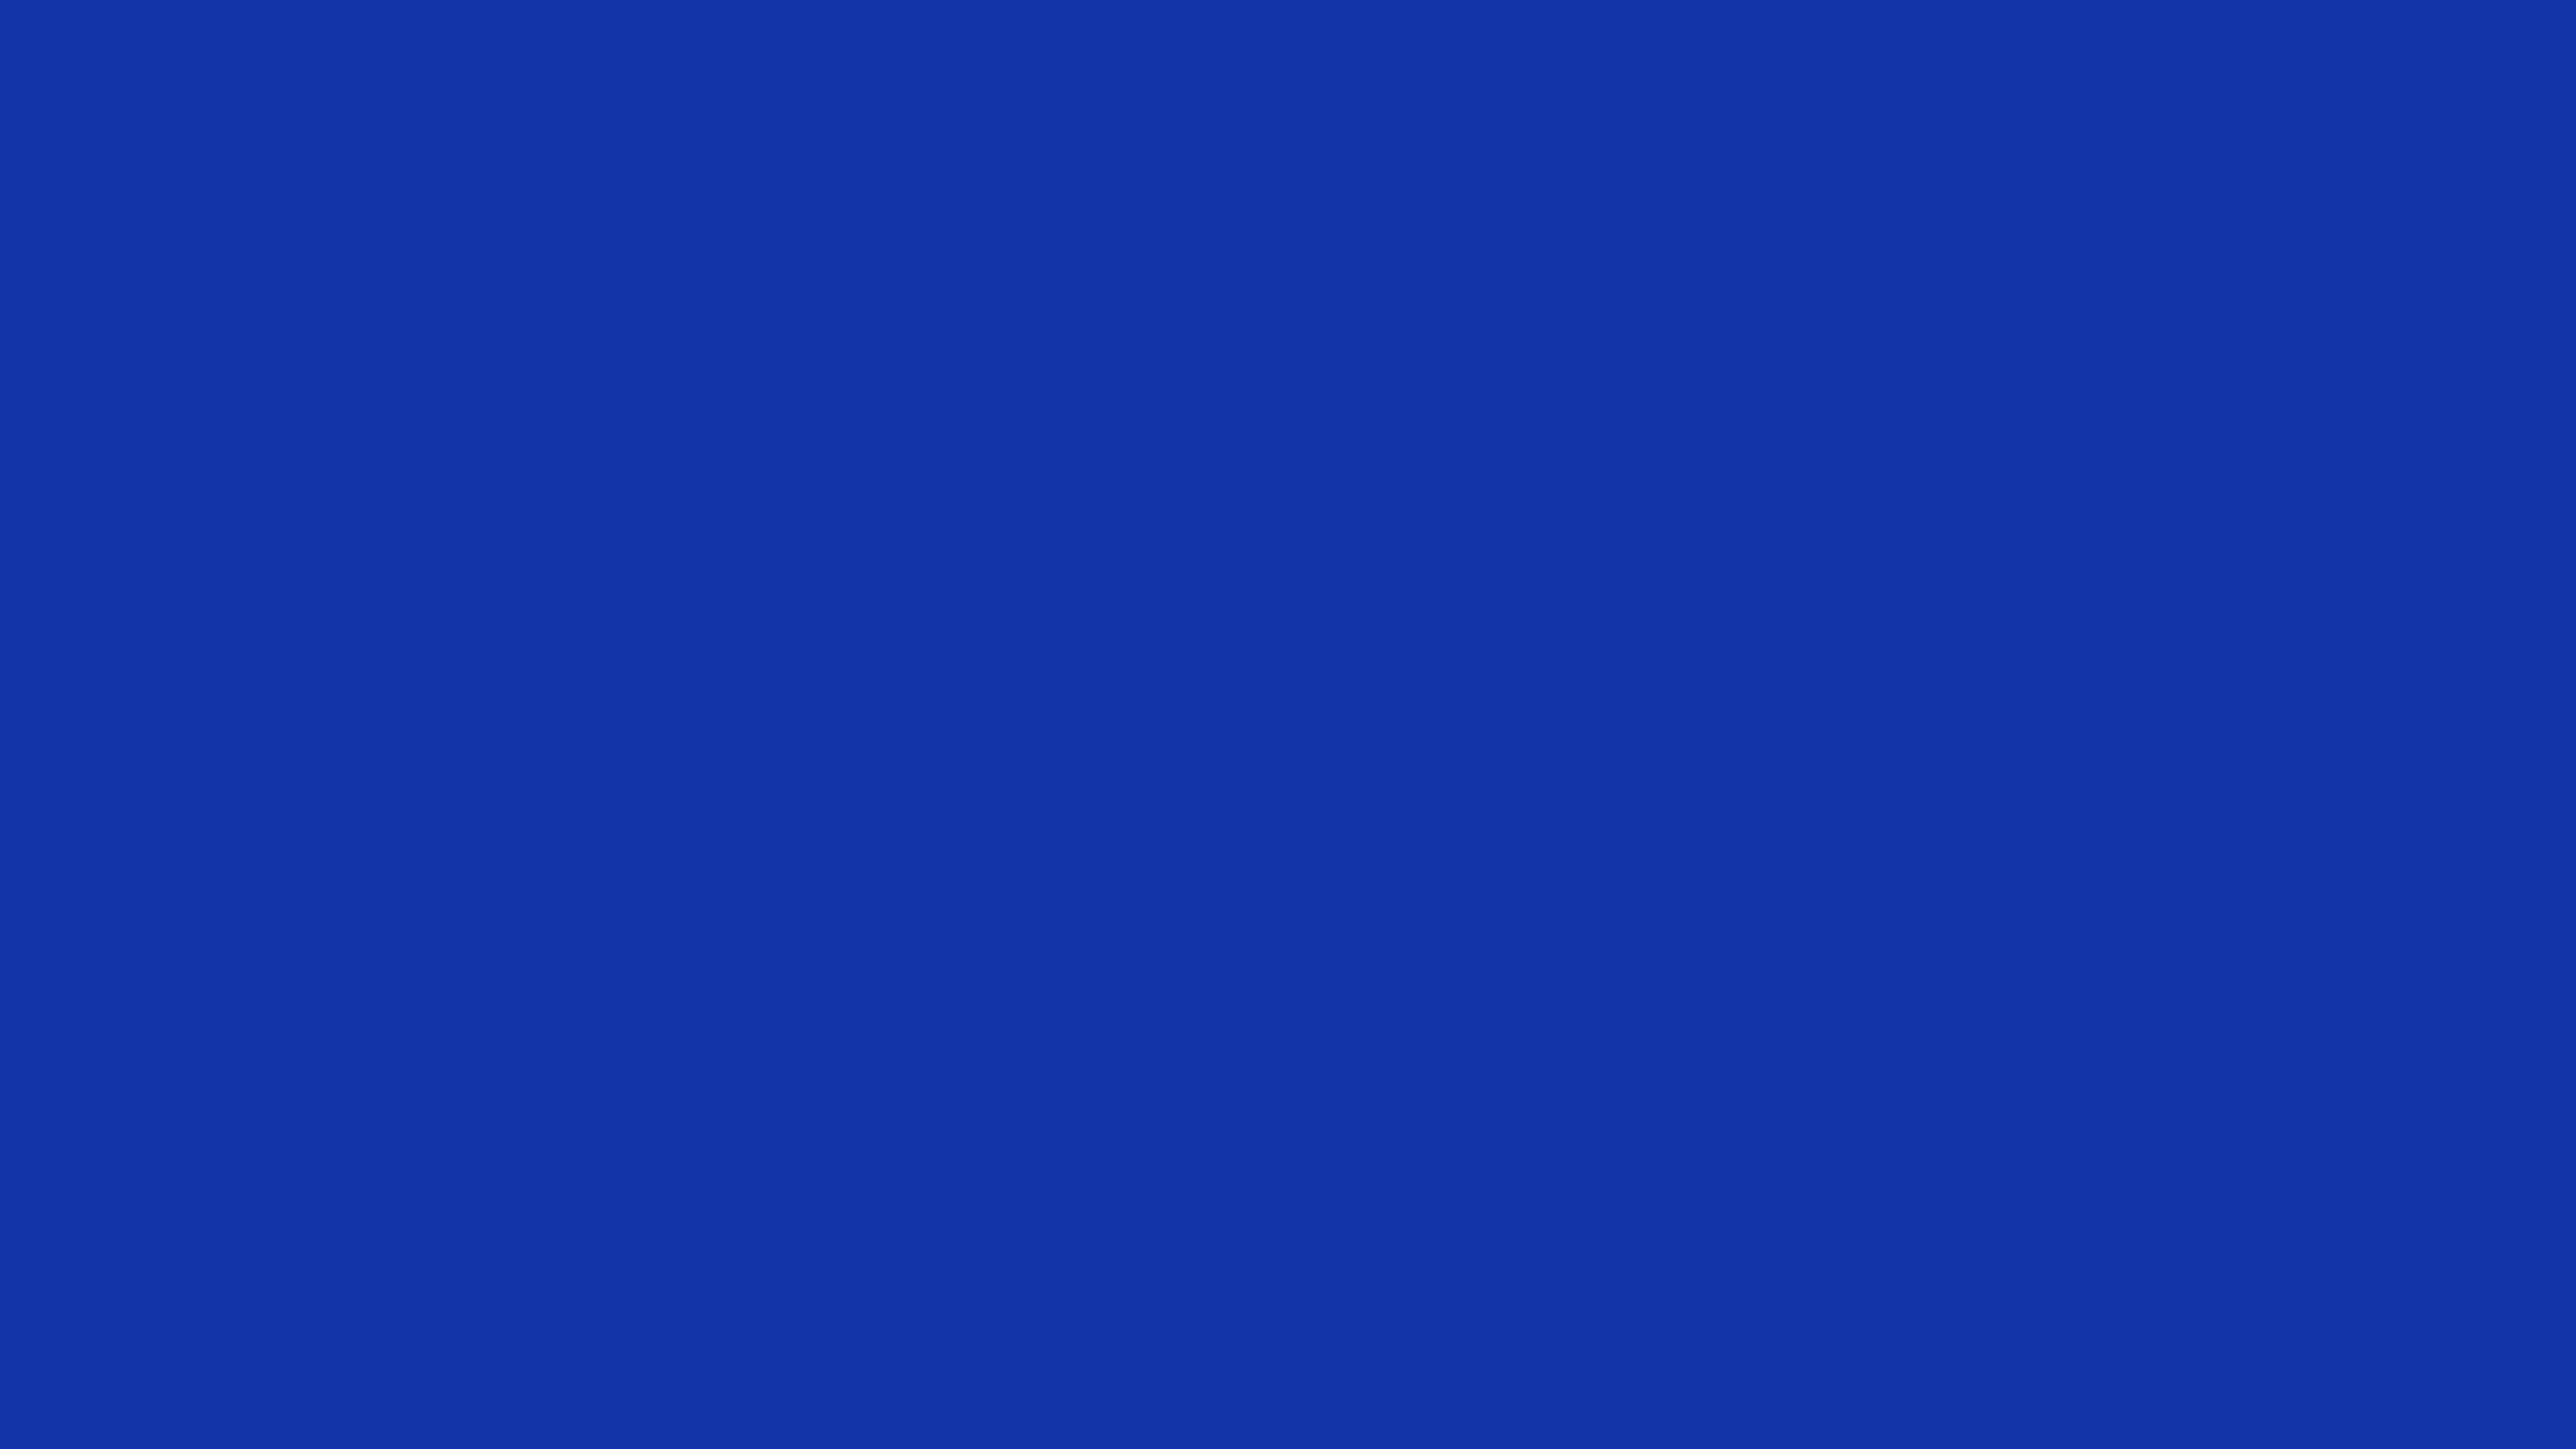 7680x4320 Egyptian Blue Solid Color Background